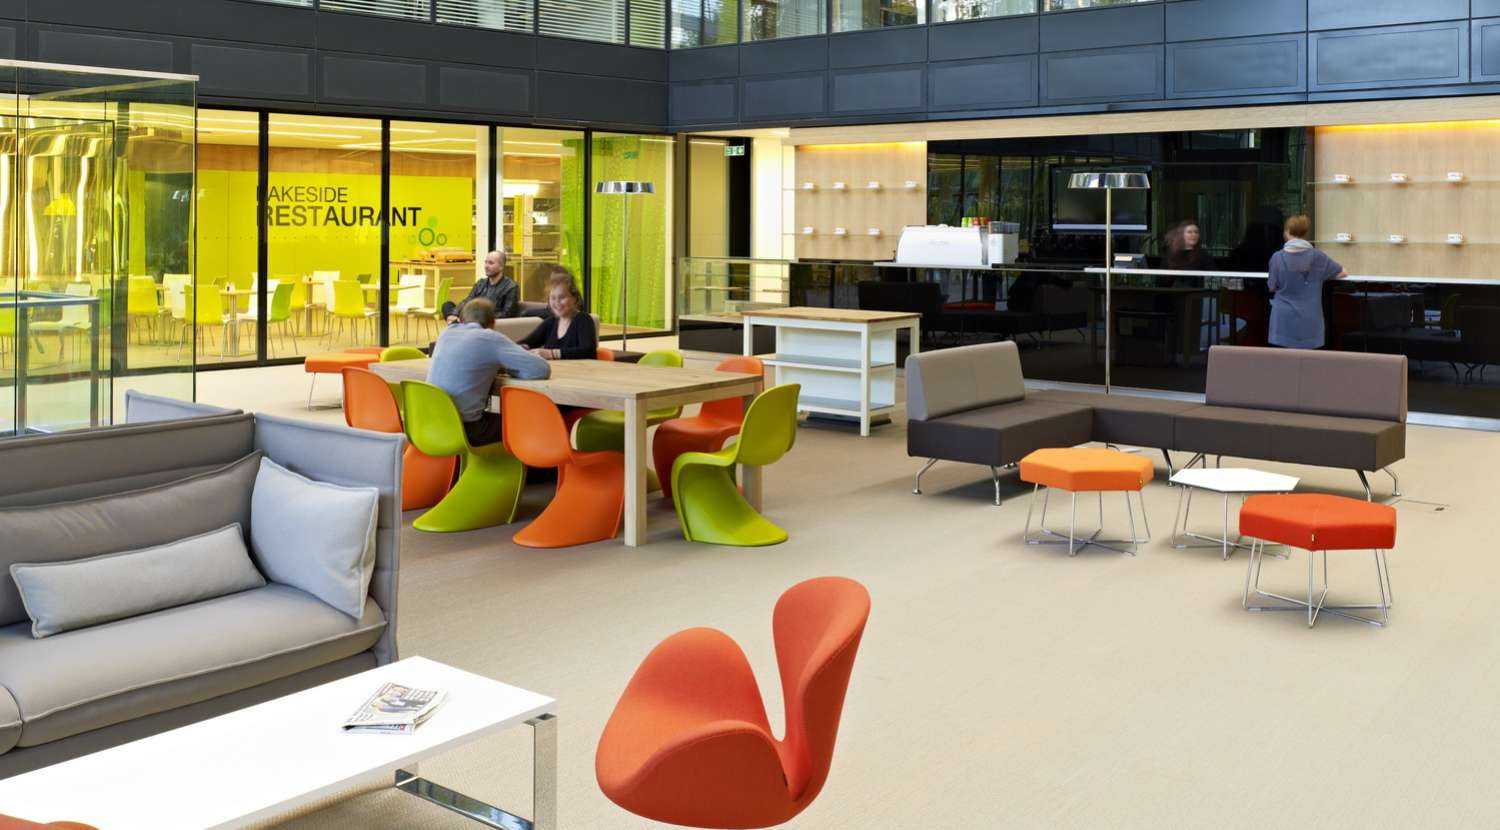 Staff bonding in modern breakout area with colourful chairs